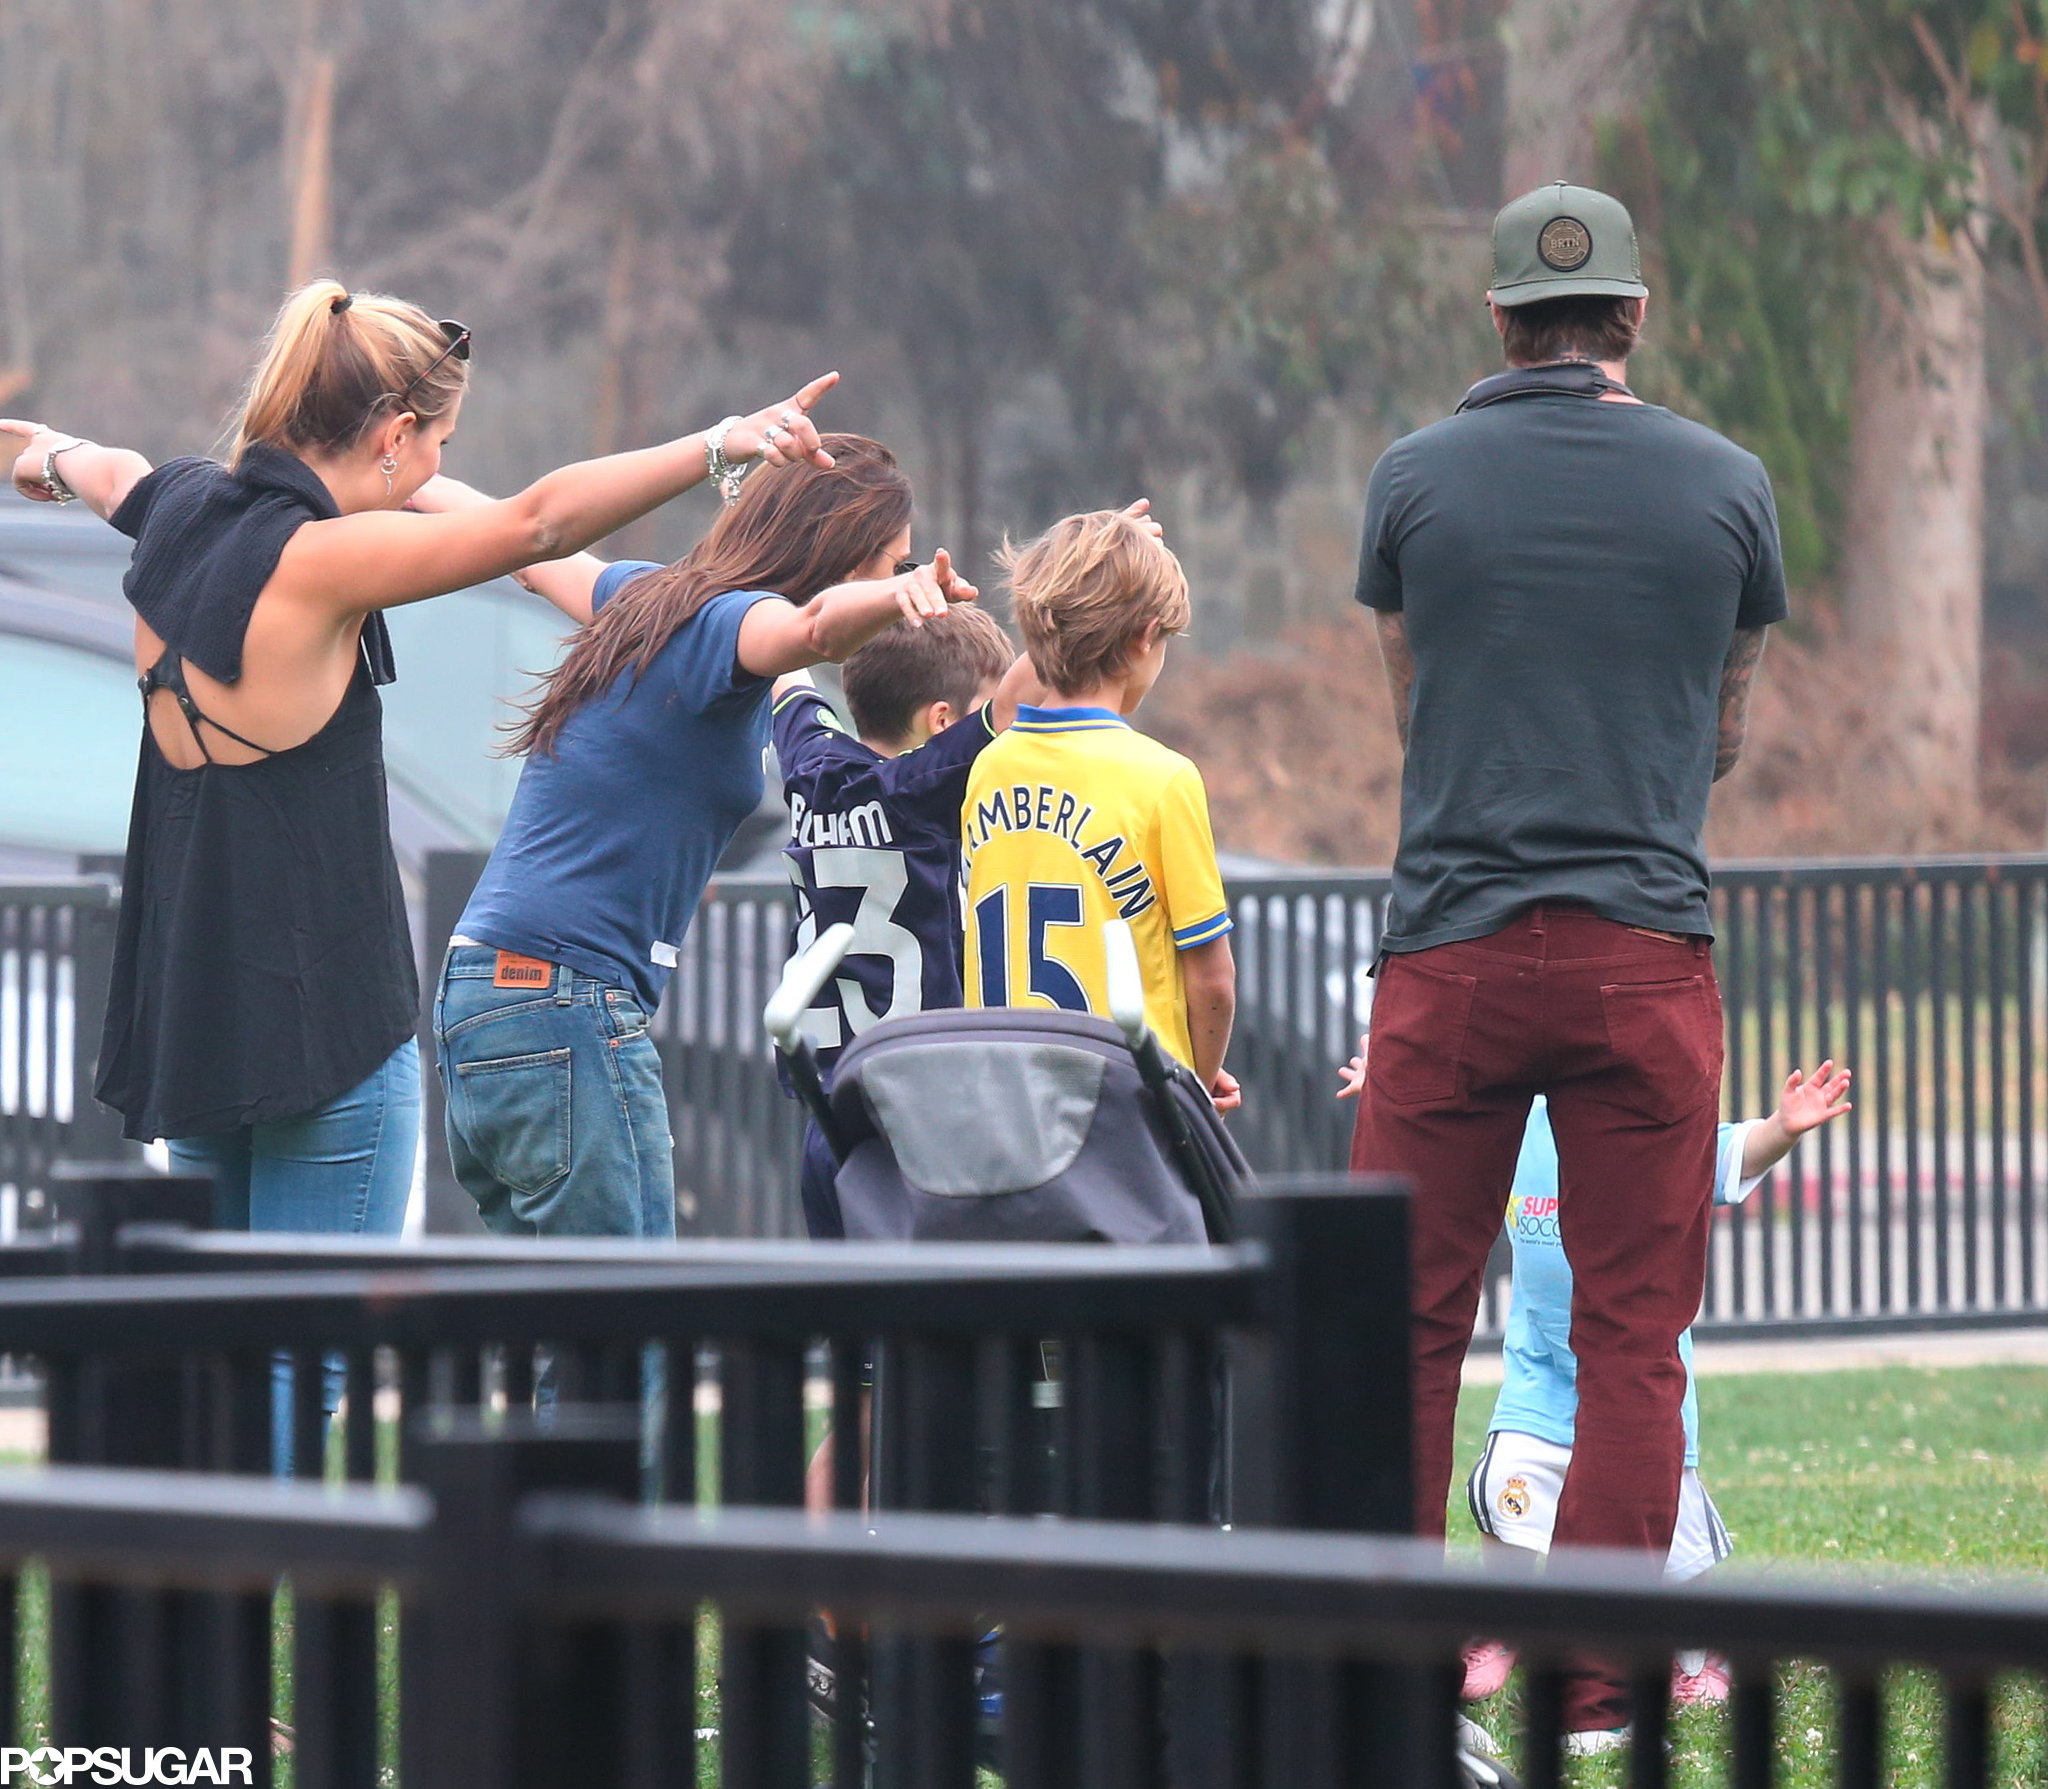 Victoria Beckham did soccer-mom duty while Harper played.